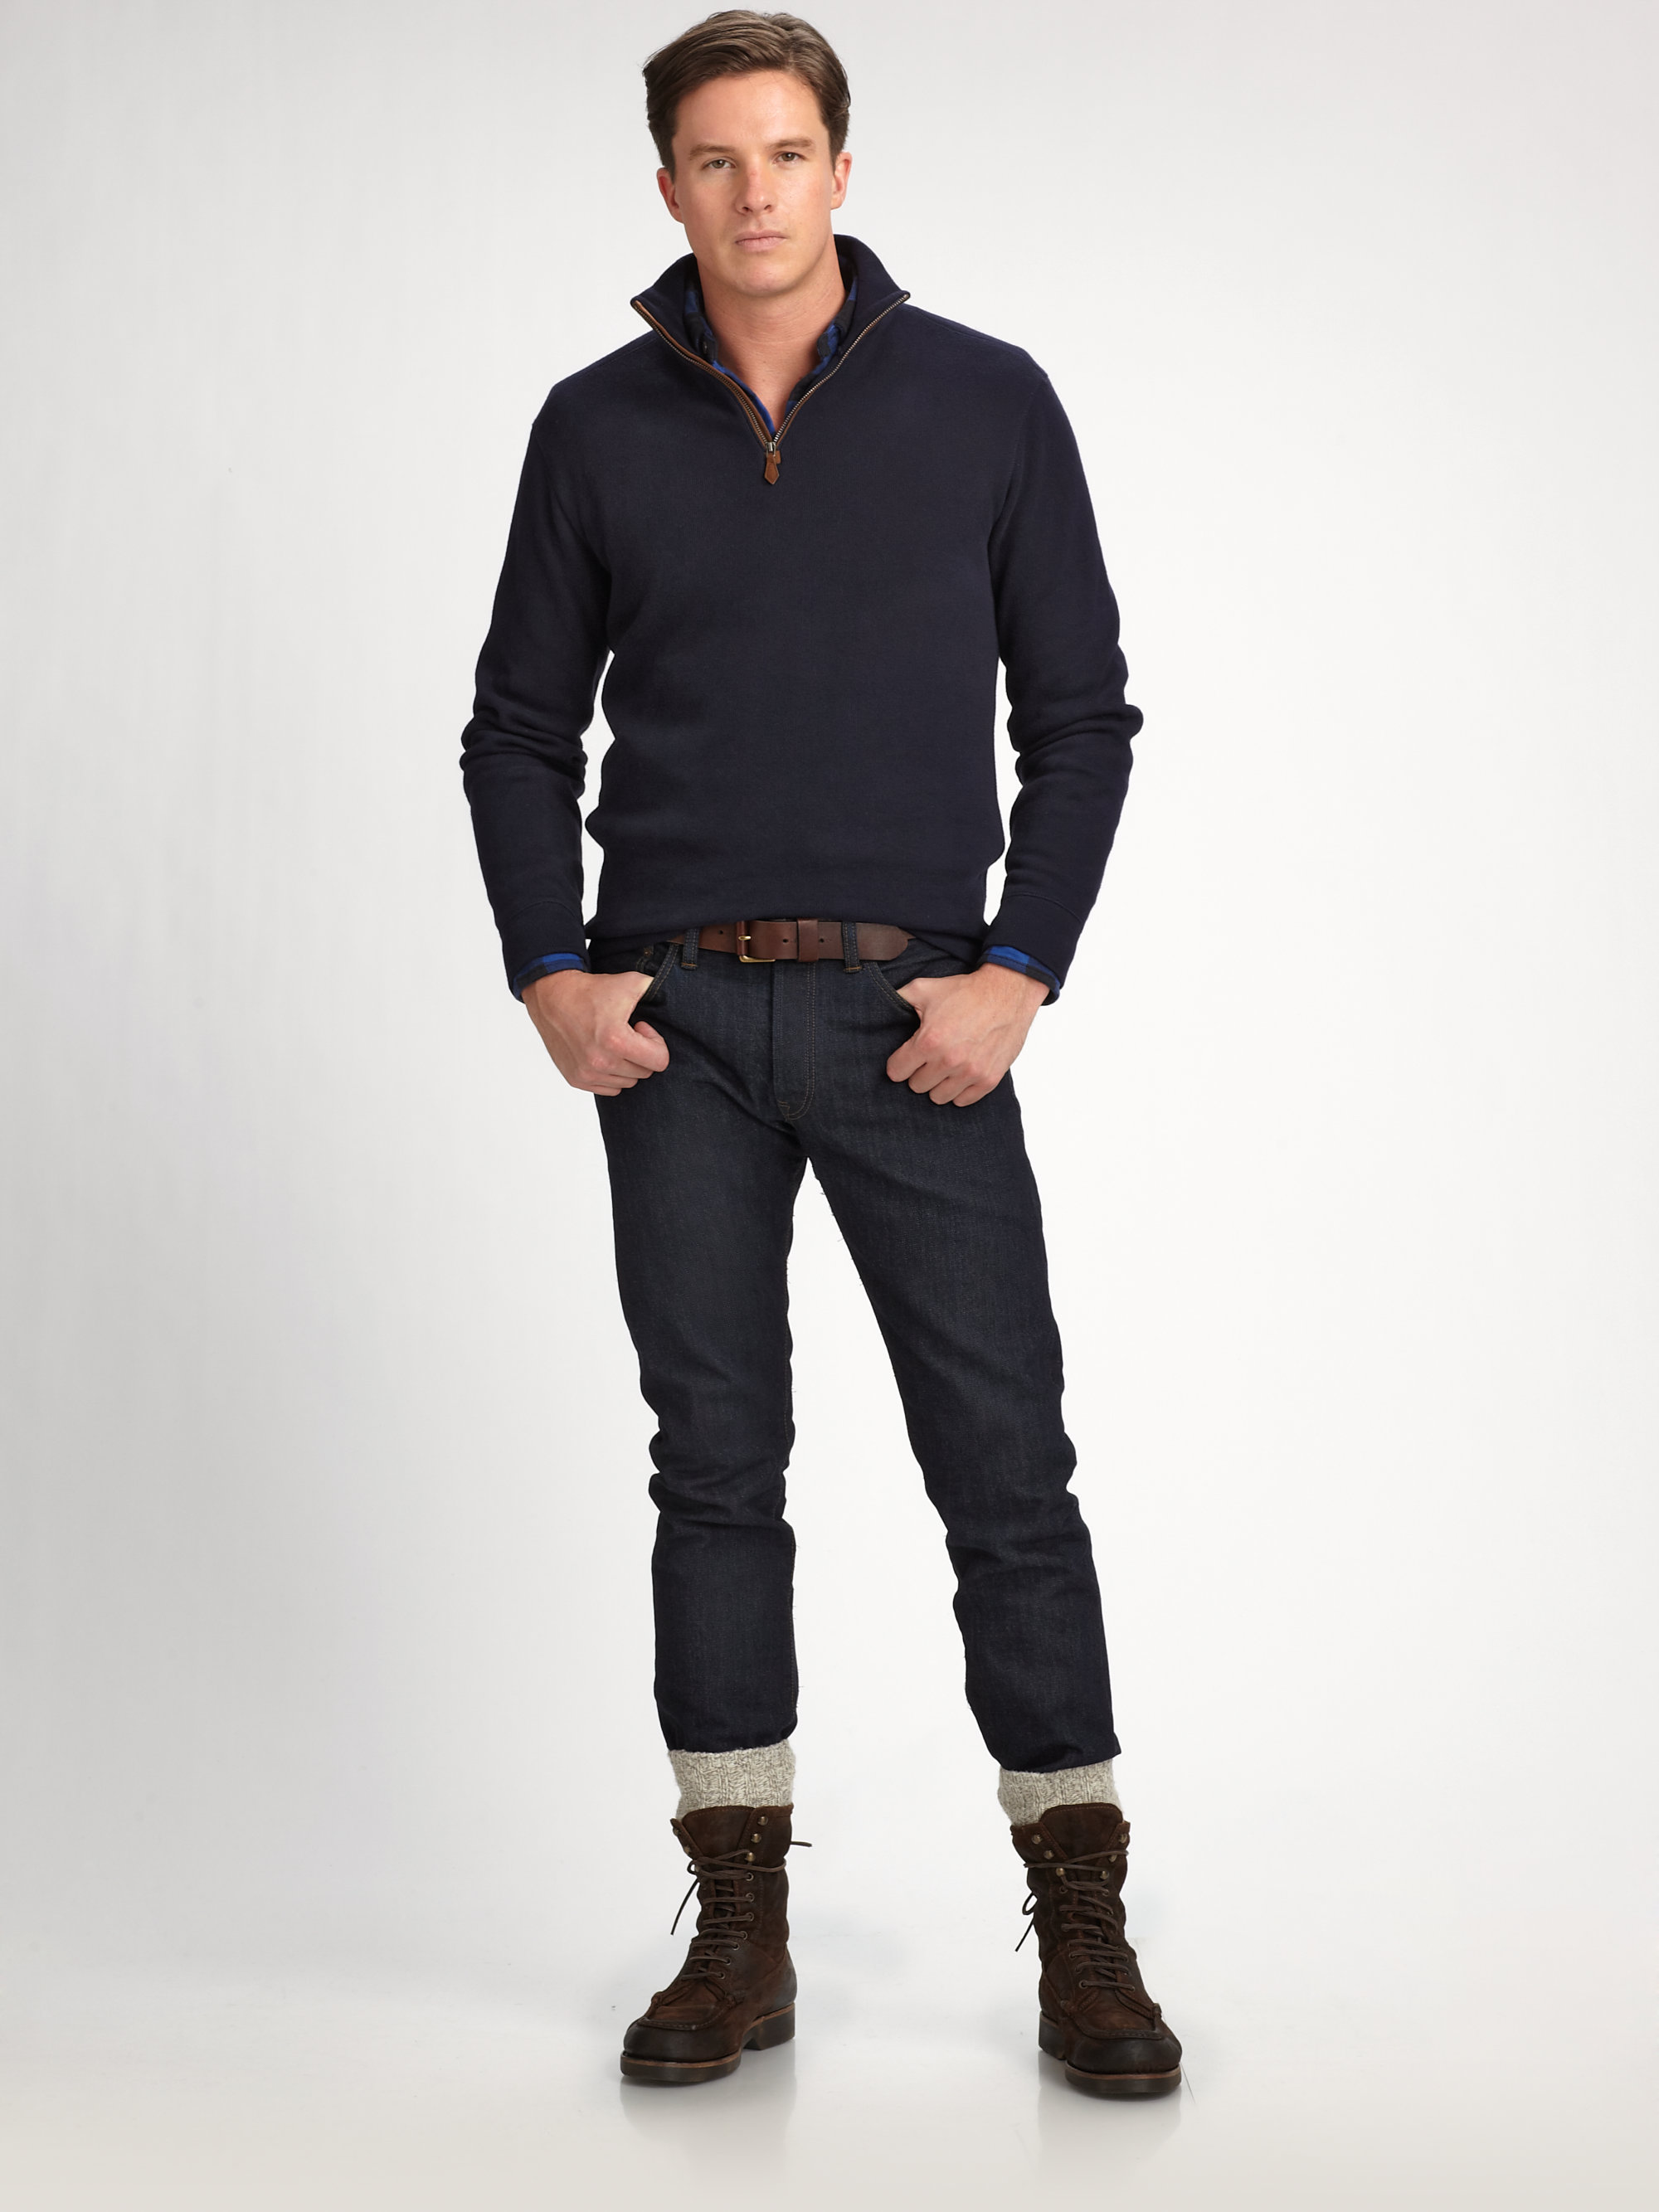 Polo ralph lauren, Polos and Ralph lauren on Pinterest